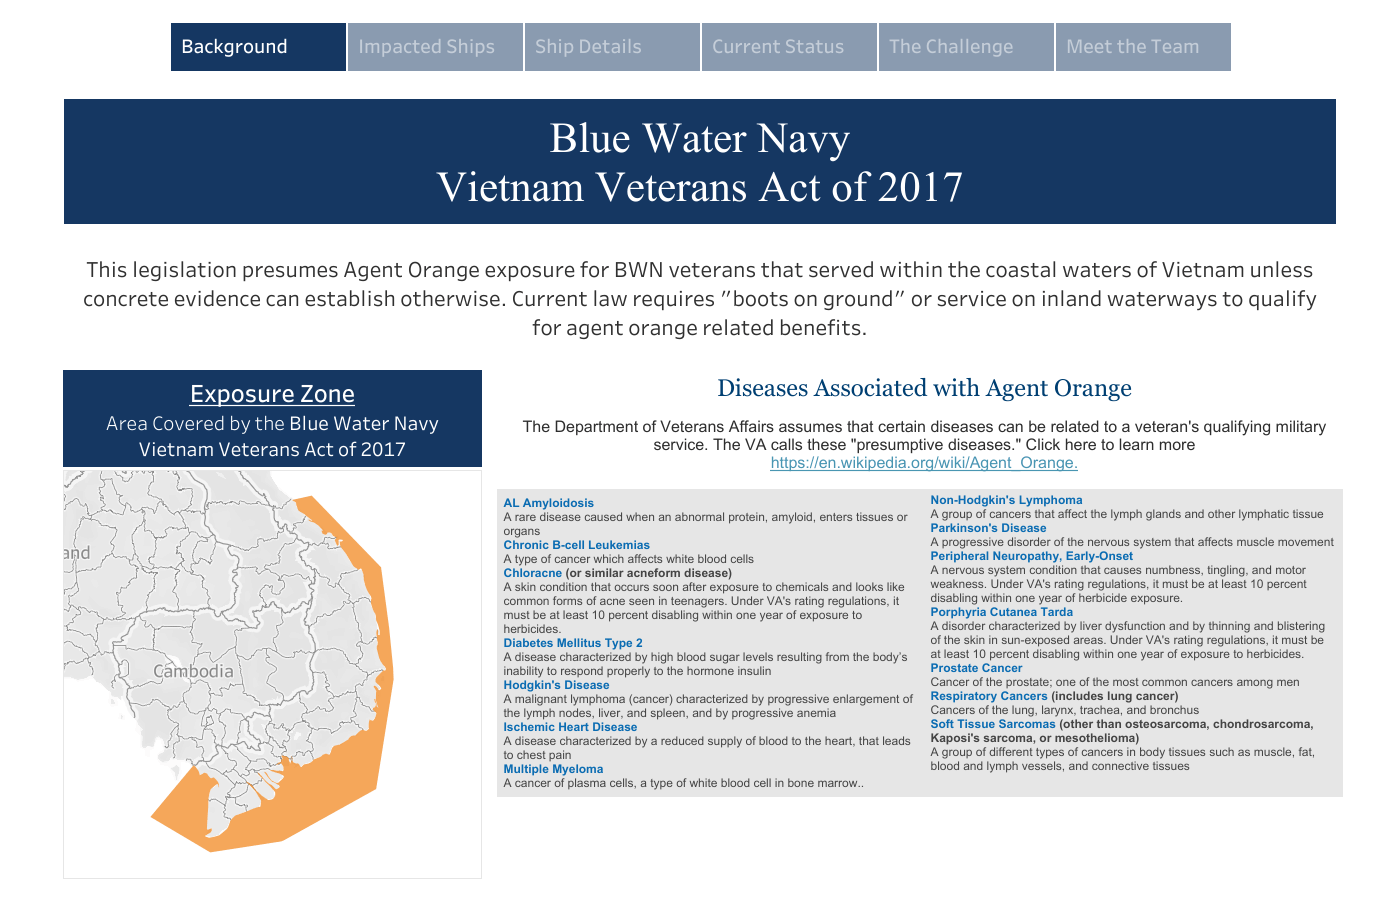 https://cdns.tblsft.com/sites/default/files/blog/bluewaternavyveteransact_uva_hackathon.png